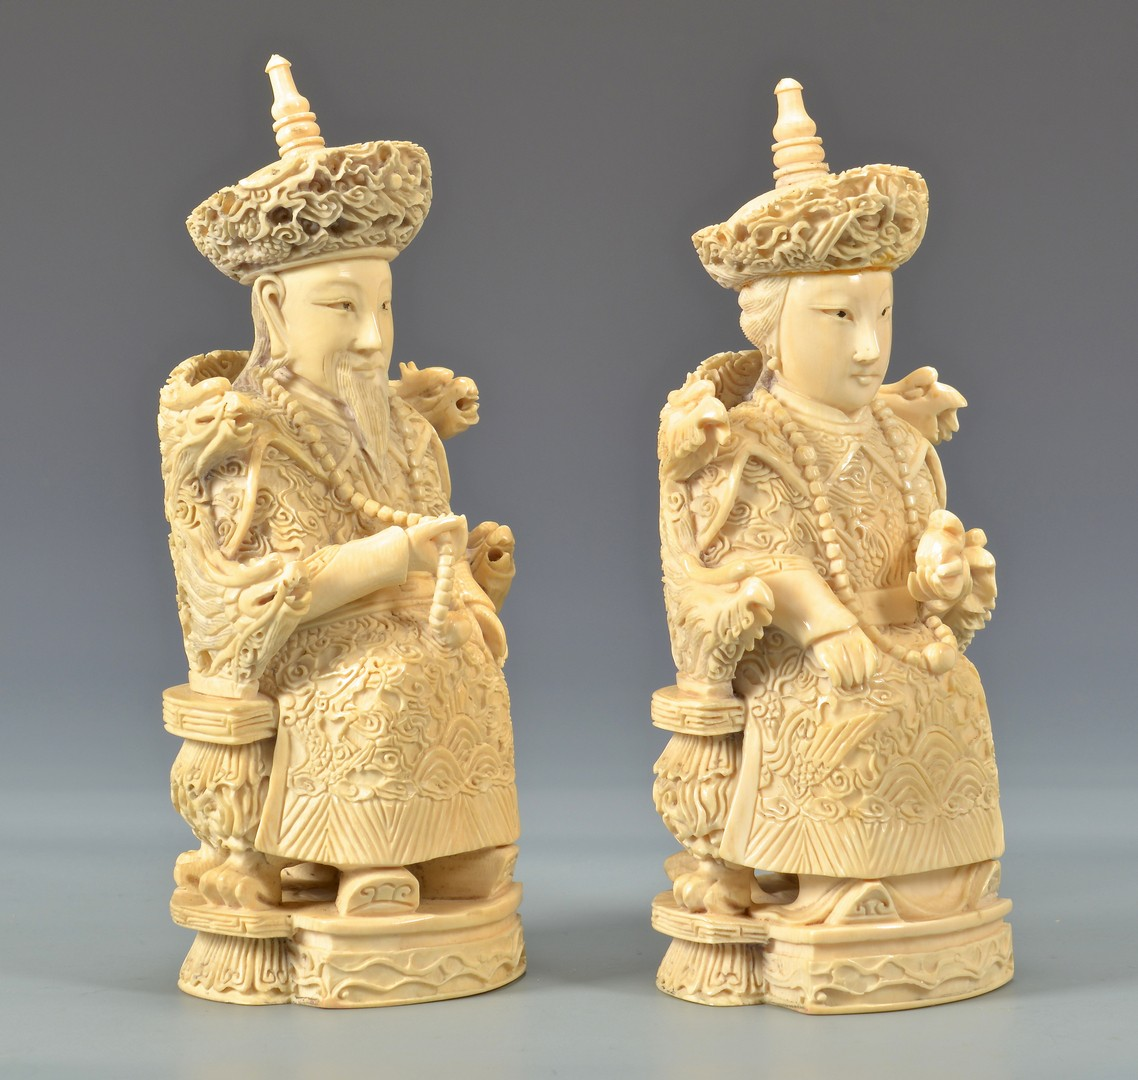 Lot 4010105: Ivory Emperor and Empress, Third quarter of the 20th century, signed